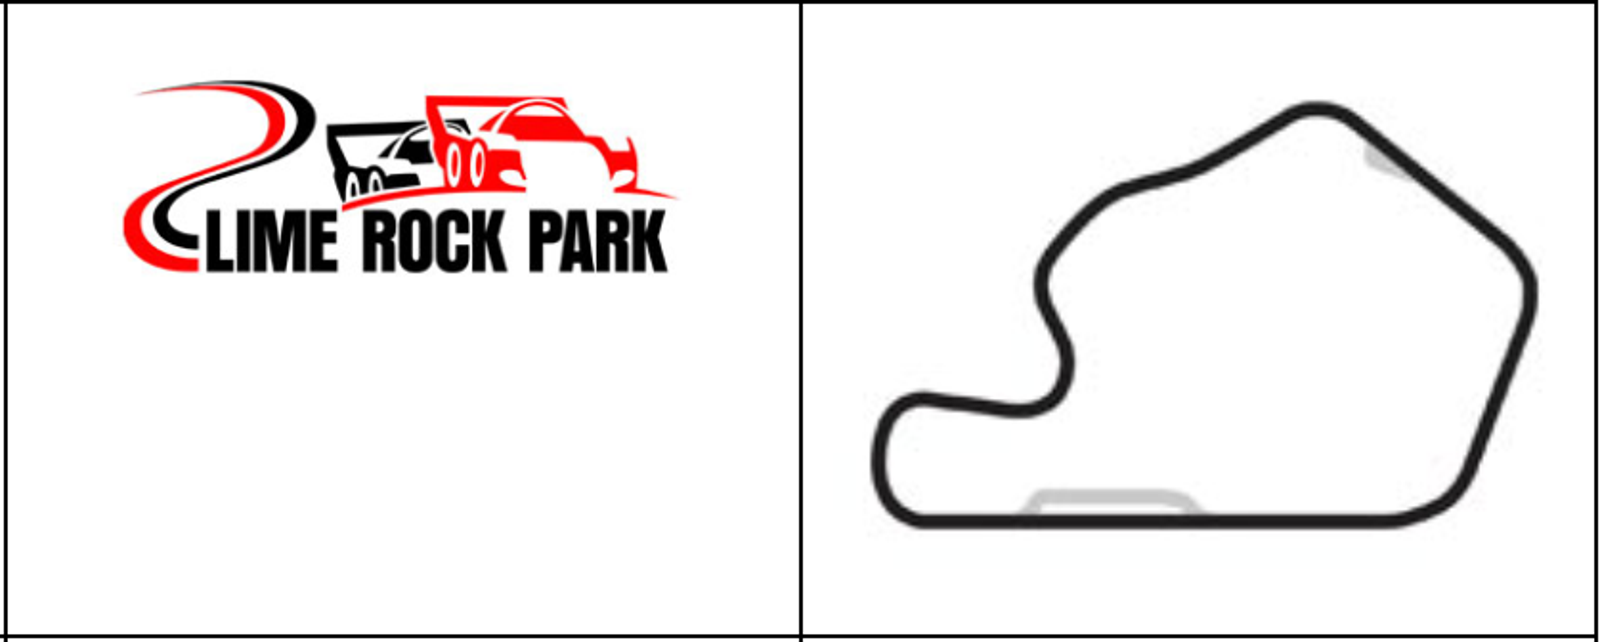 Date: 11/28/18 - Oppositelock will start its first championship race at Lime Rock Park. This track features high speeds, close racing, and will make a good introductory track to the series.